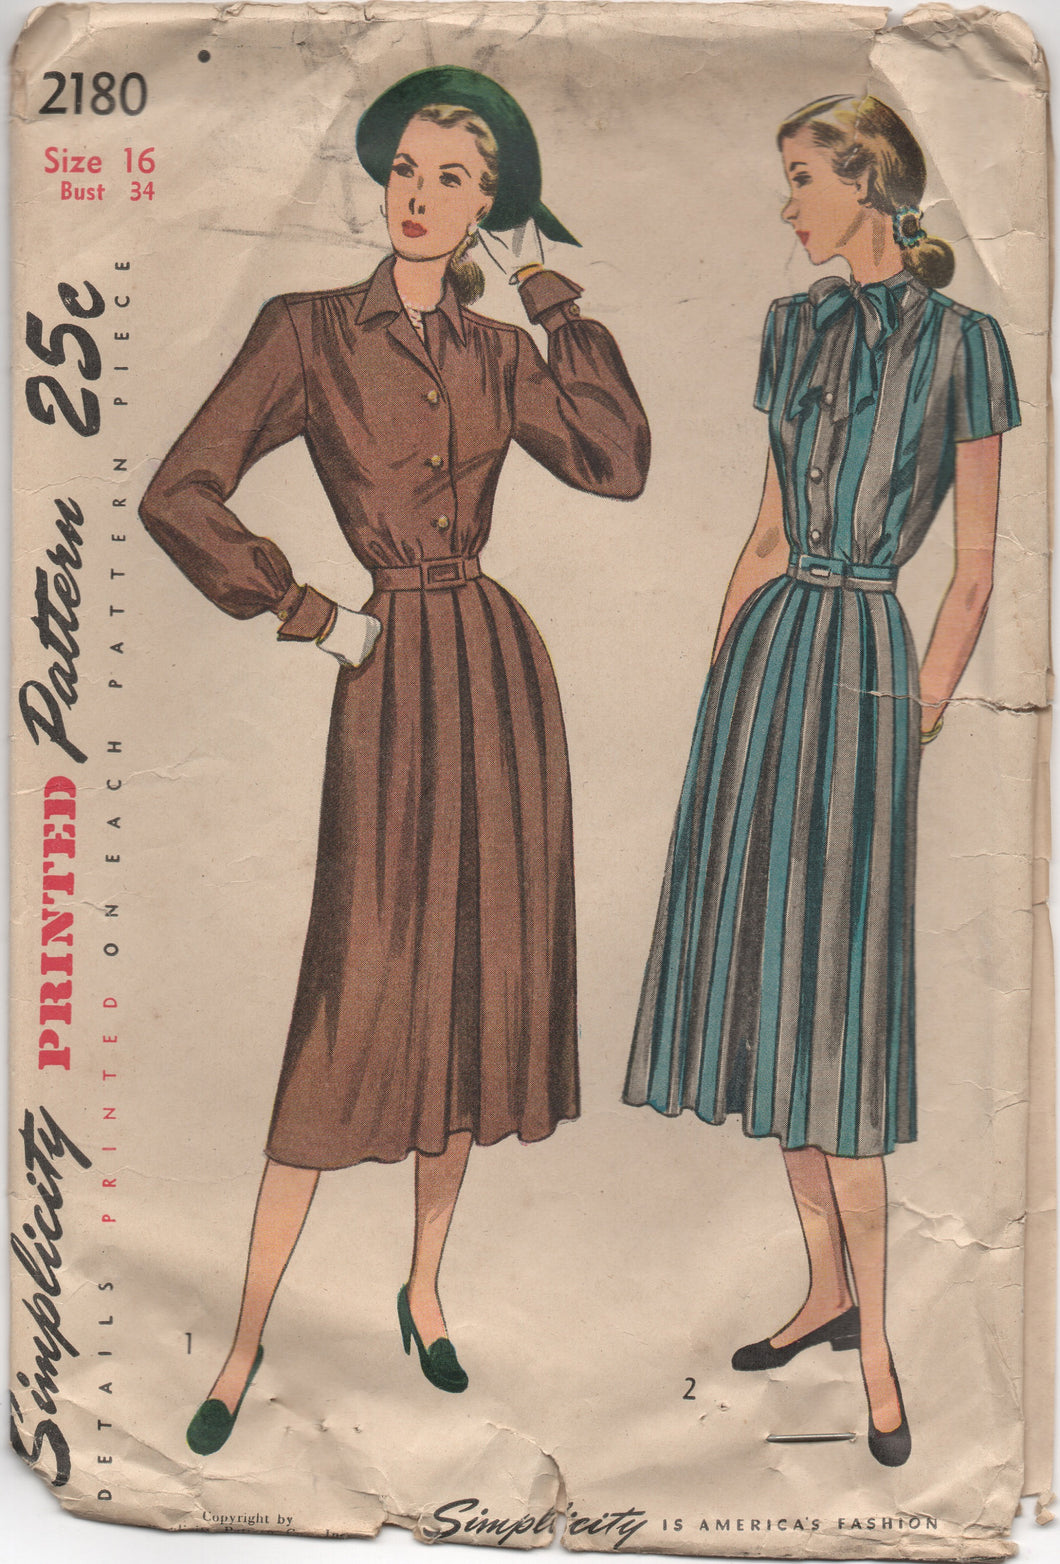 1940's Simplicity Shirtwaist Dress with Soft Pleats, Bow Detail at Neck - Bust 34